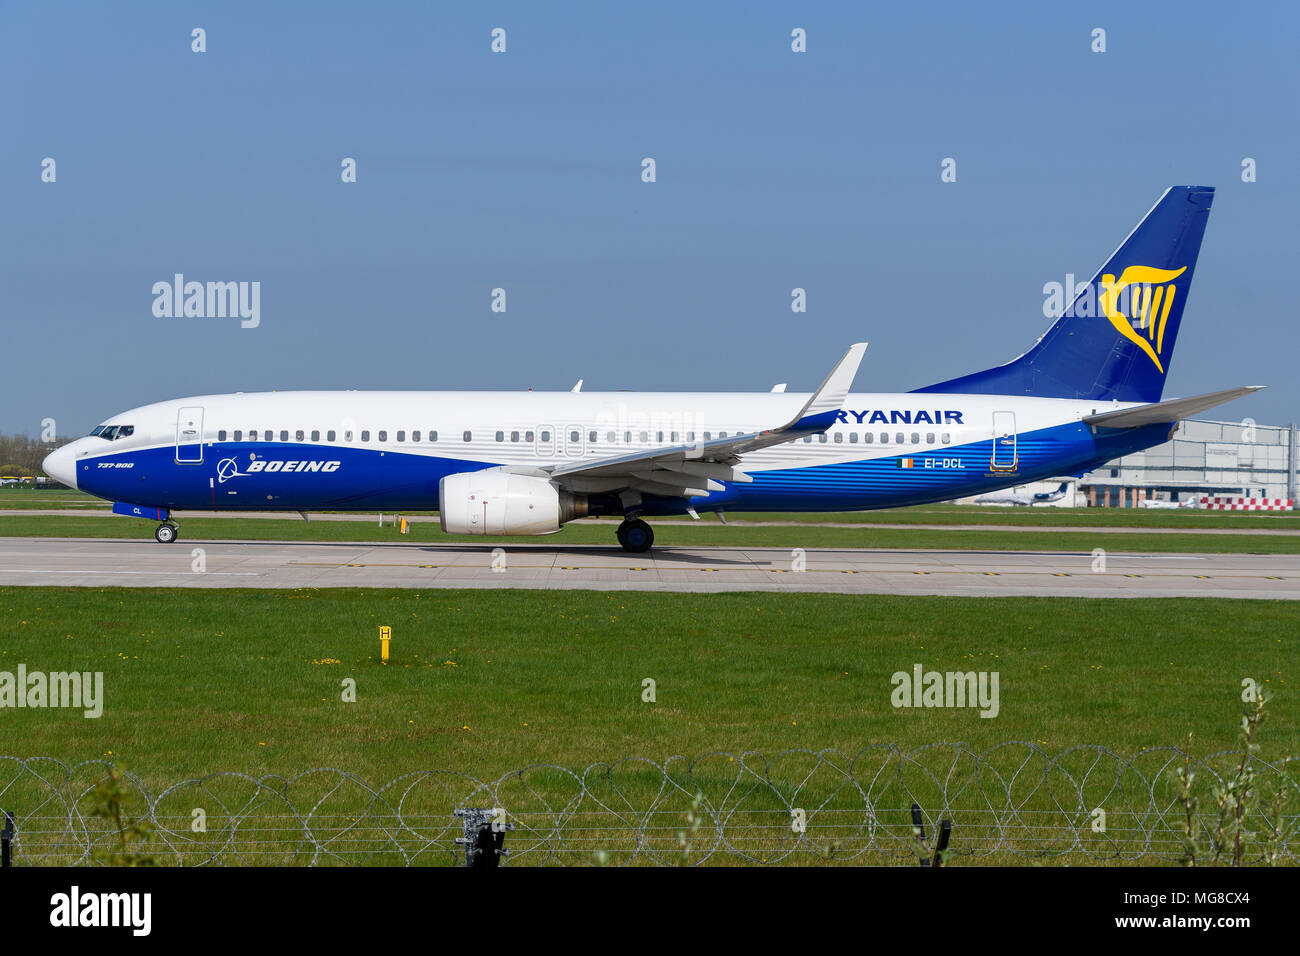 MANCHESTER, UNITED KINGDOM - APRIL 21st, 2018:  Ryanair Boeing 737 in dreamliner livery ready to depart at Manchester Airport - Stock Image